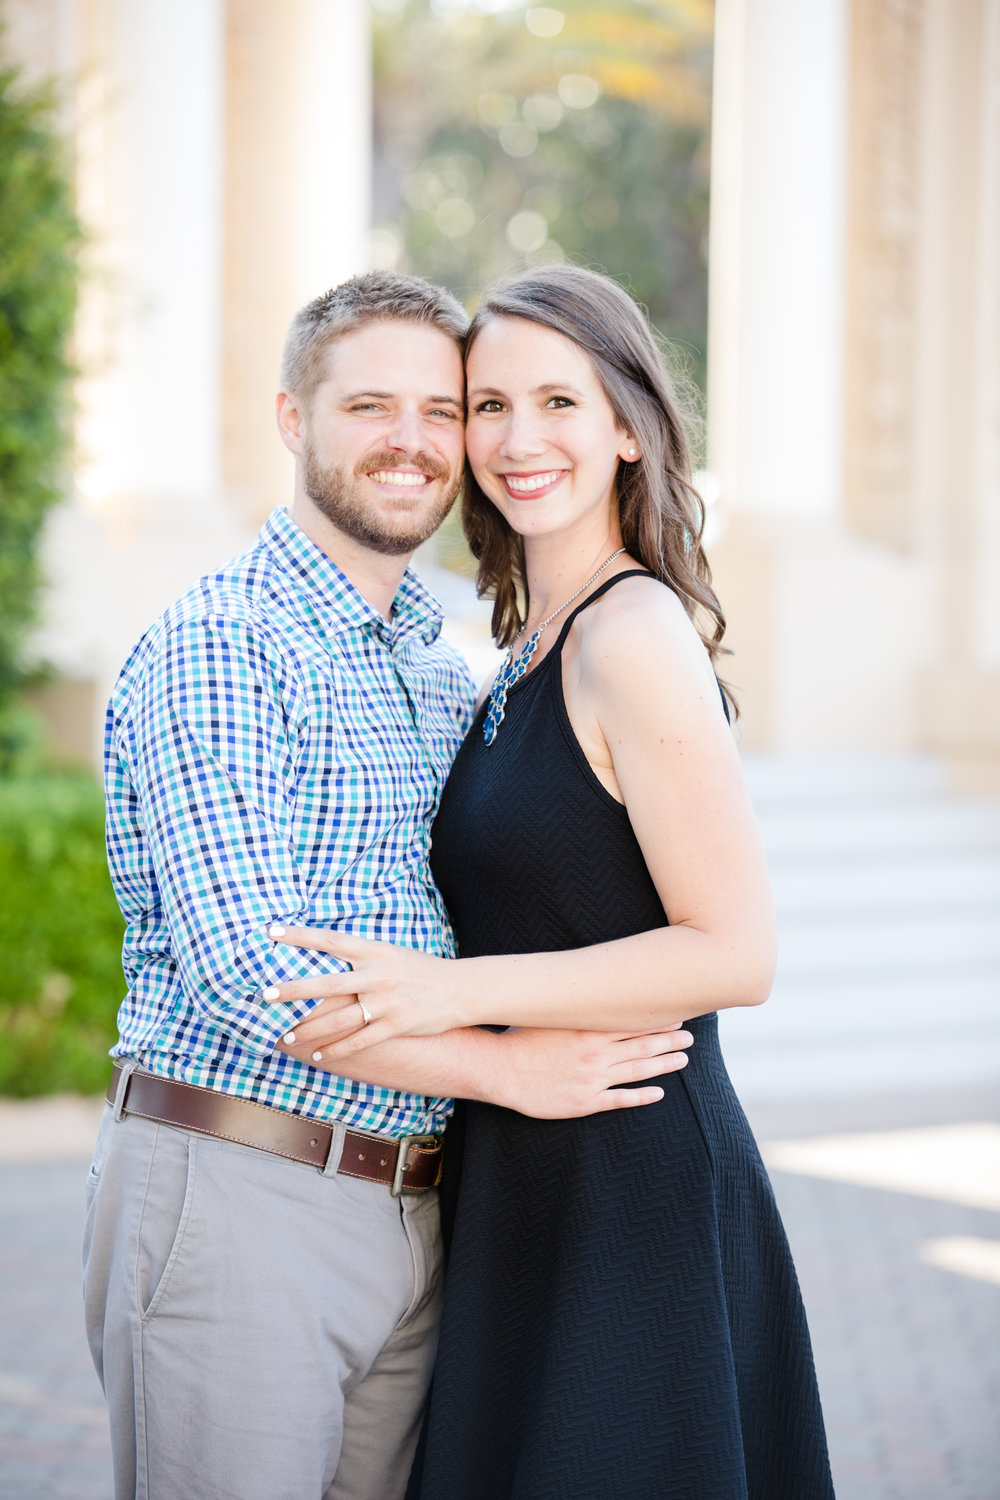 katherine_beth_photography_san_diego_wedding_photographer_San_diego_engagement_photos_Balboa_park_engagement_session_002.jpg